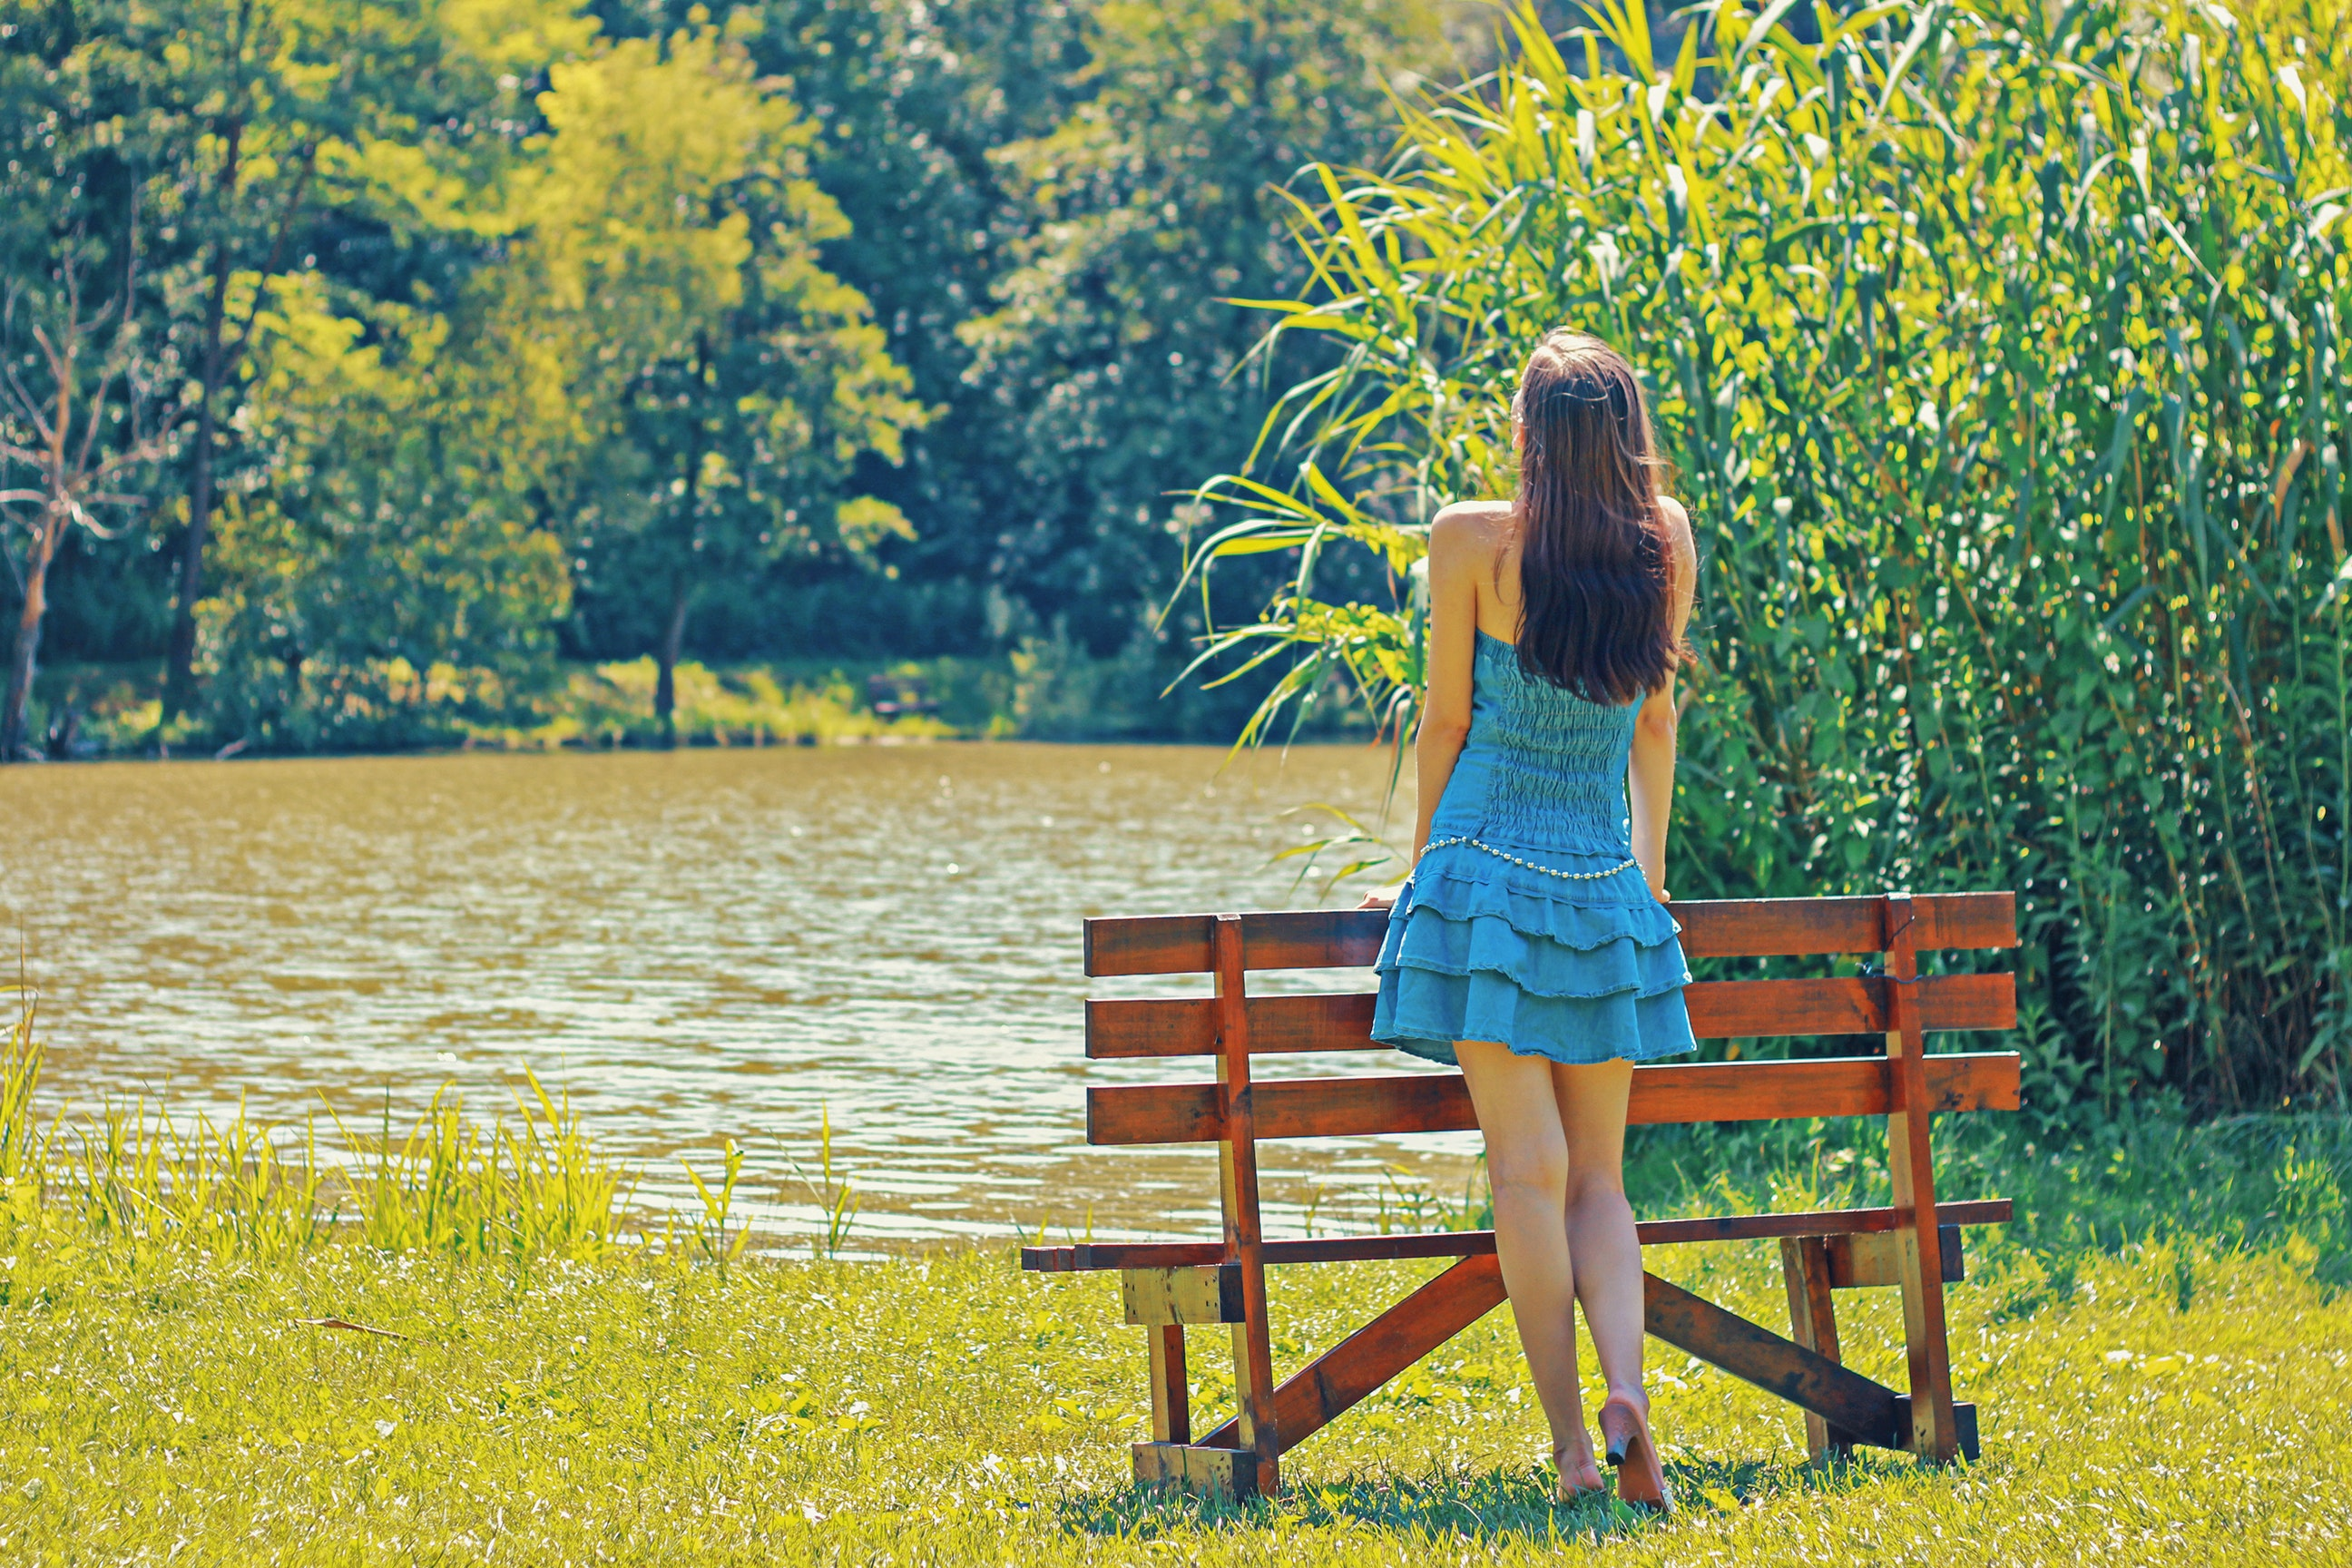 Full Length Rear View of a Woman Overlooking Calm Lake, Back view, Pose, Park, Person, HQ Photo